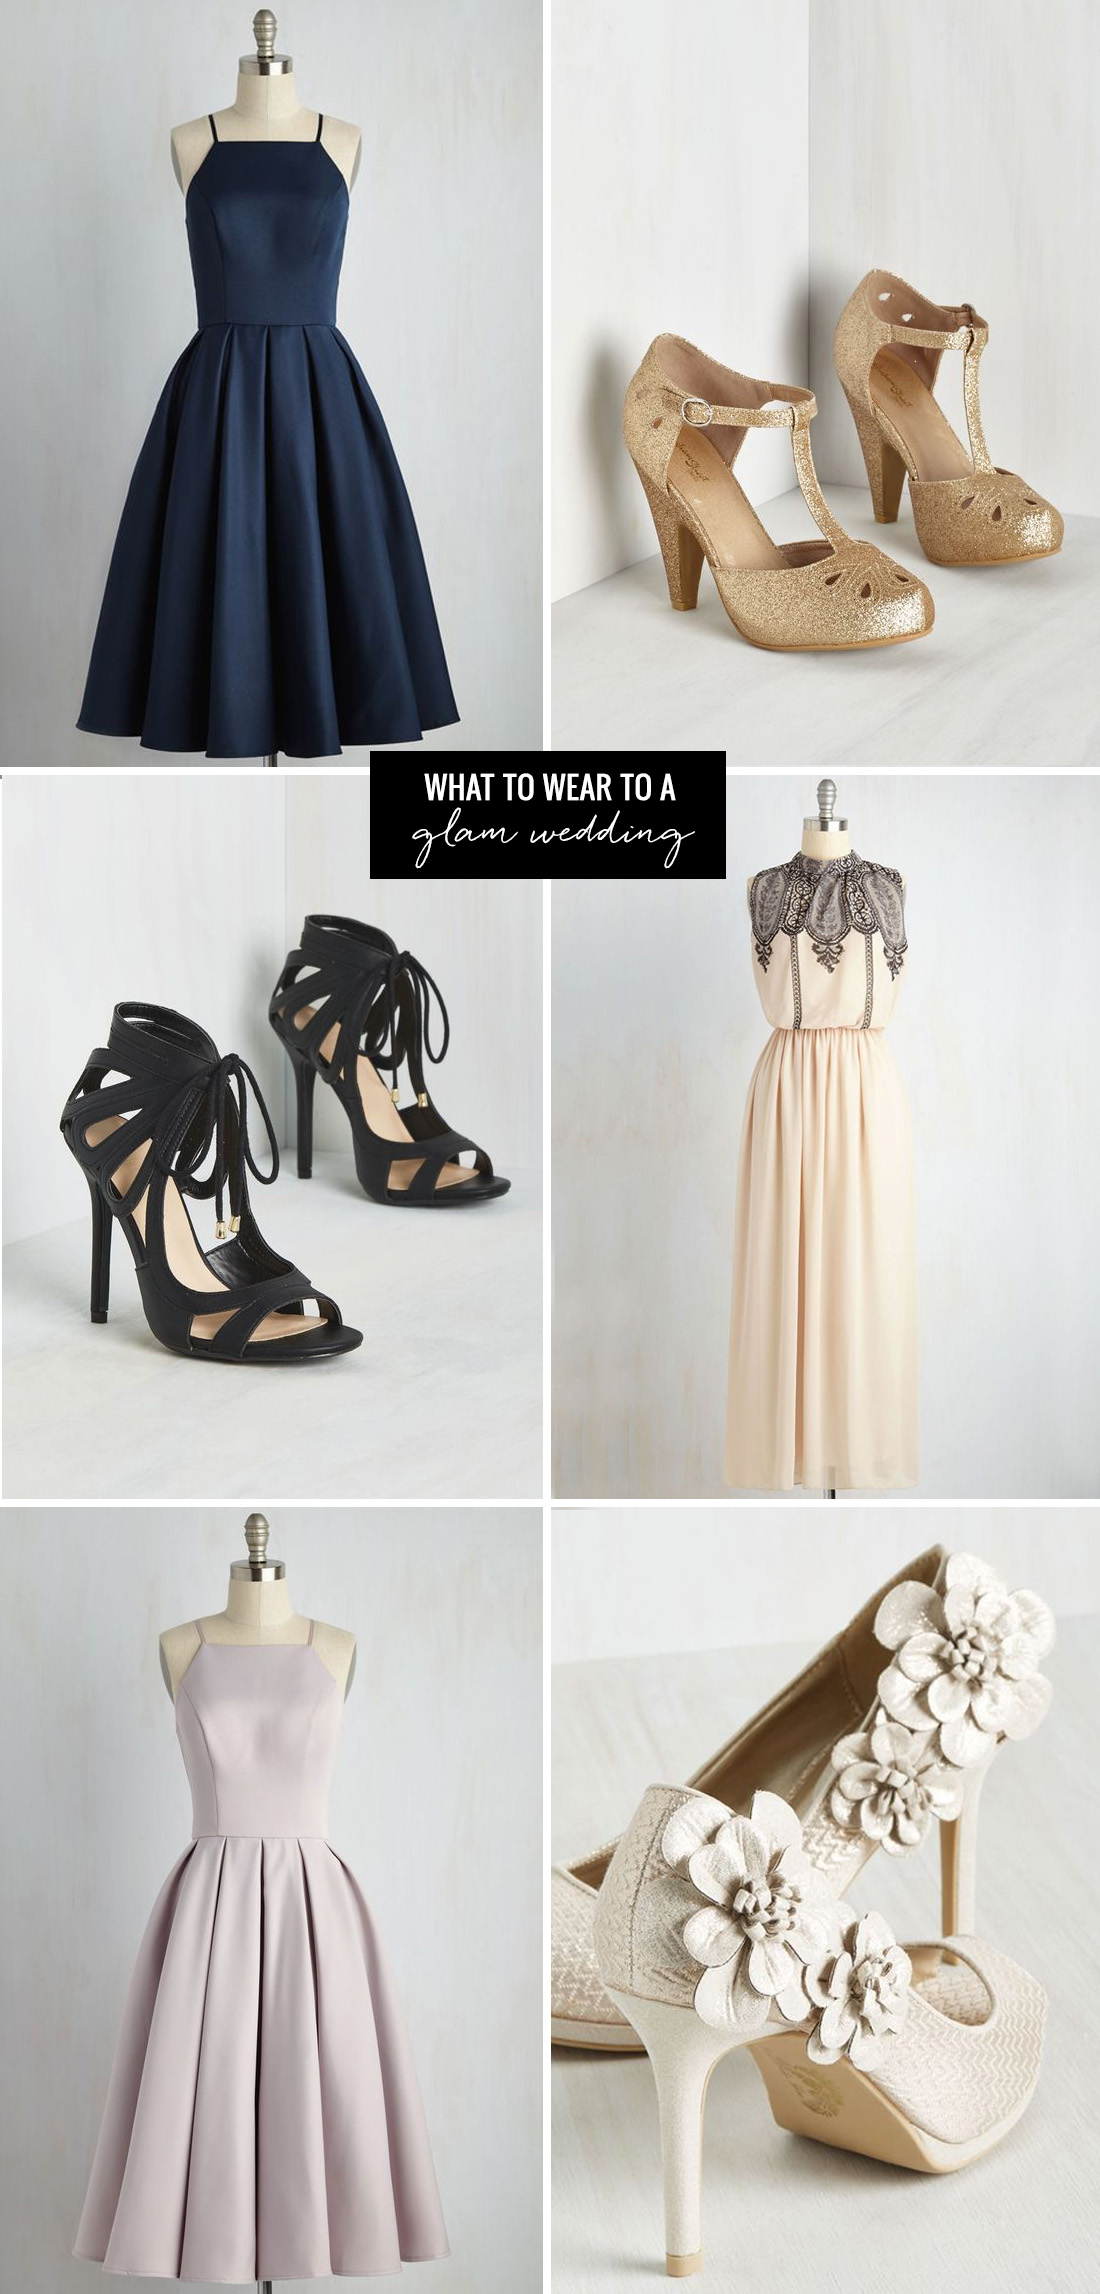 what to wear to a glam wedding